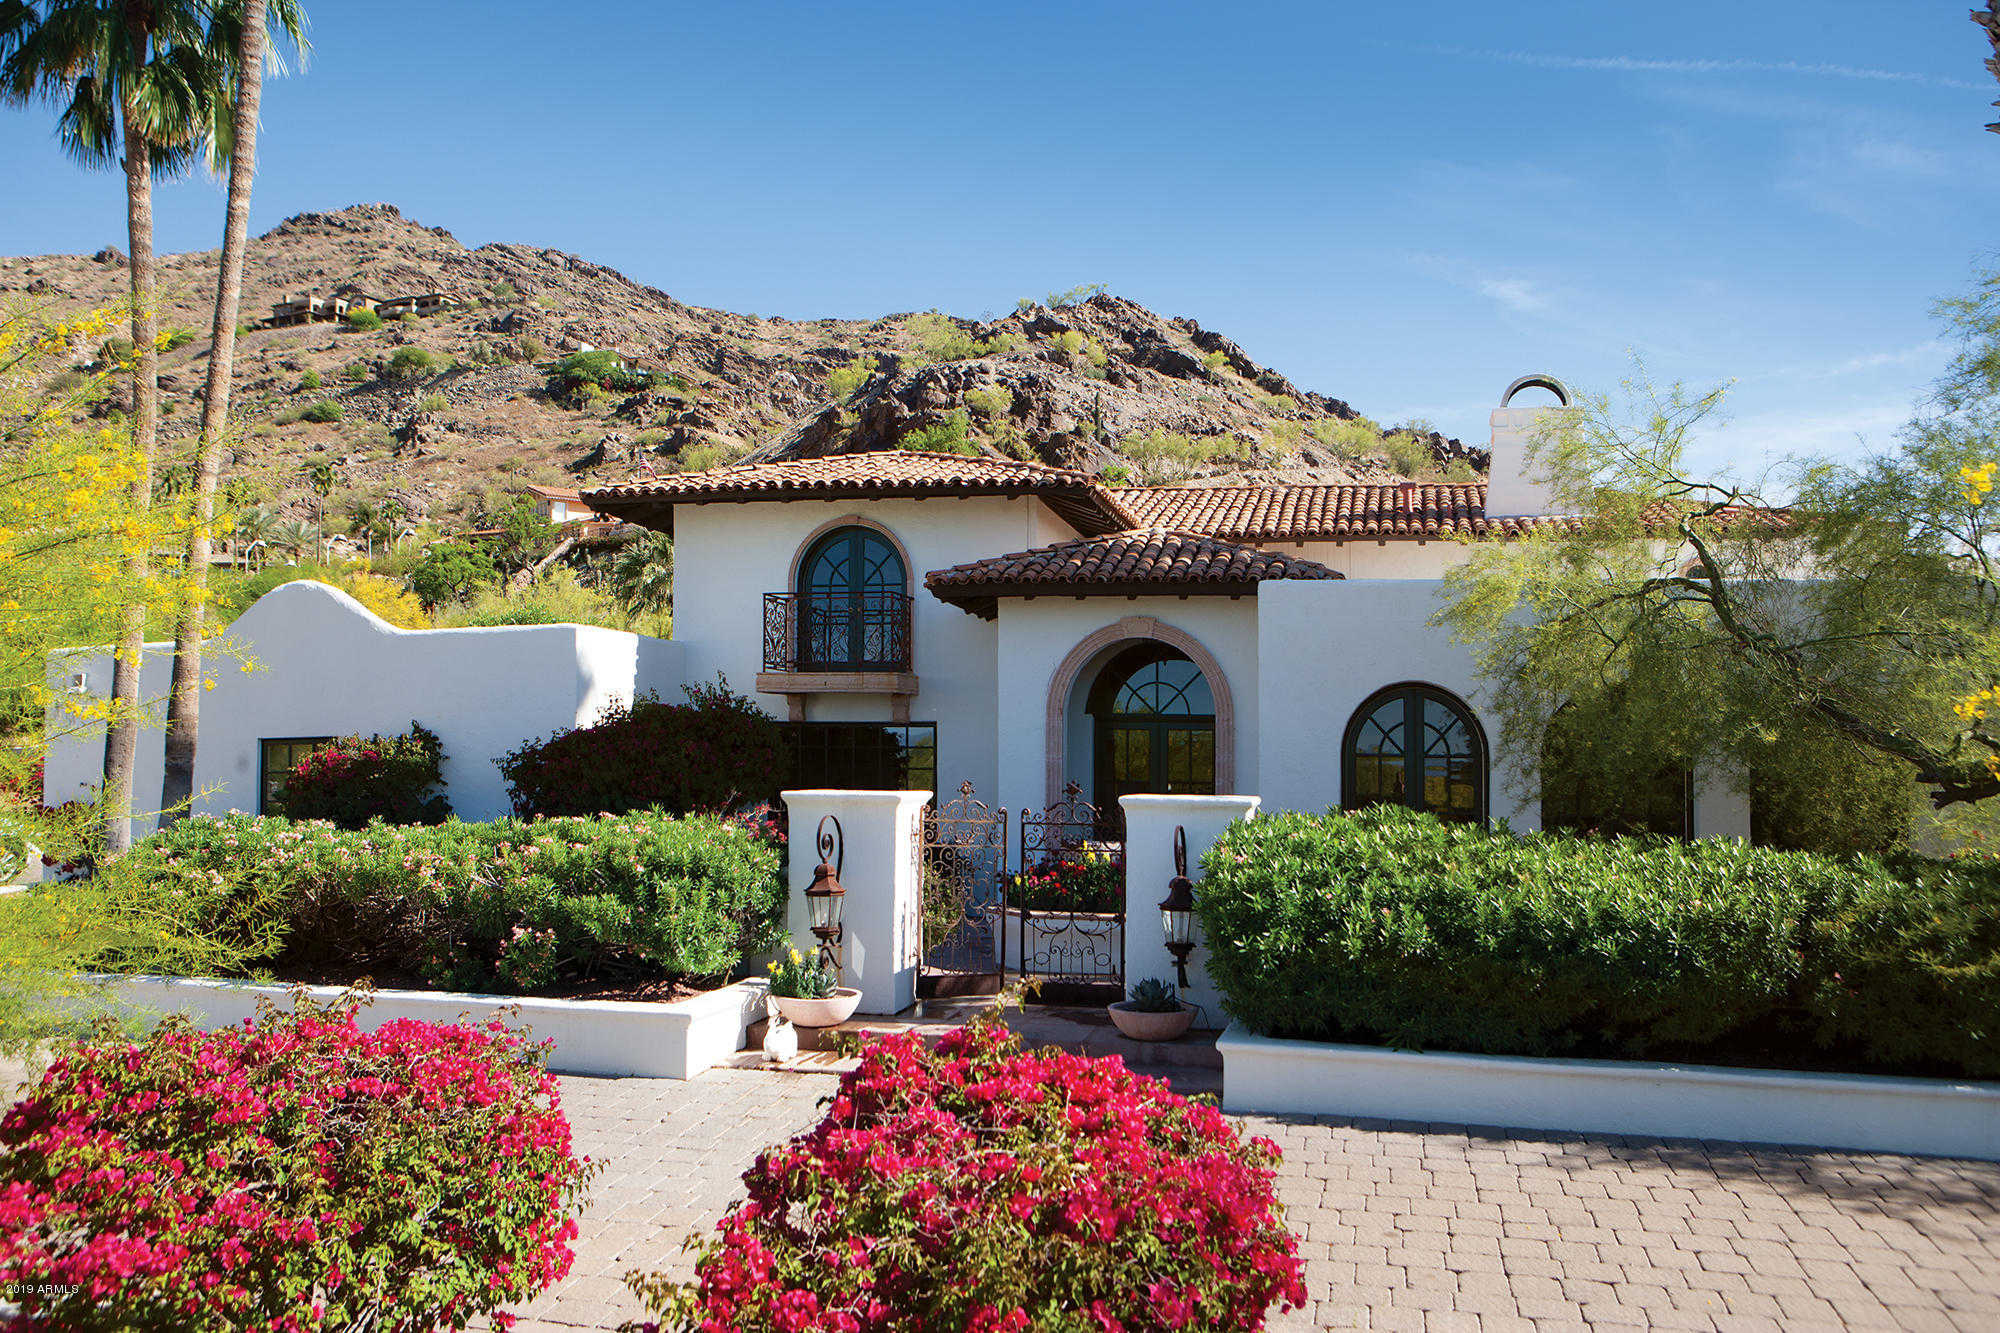 $3,000,000 - 4Br/5Ba - Home for Sale in Paradise Canyon Foothills, Paradise Valley